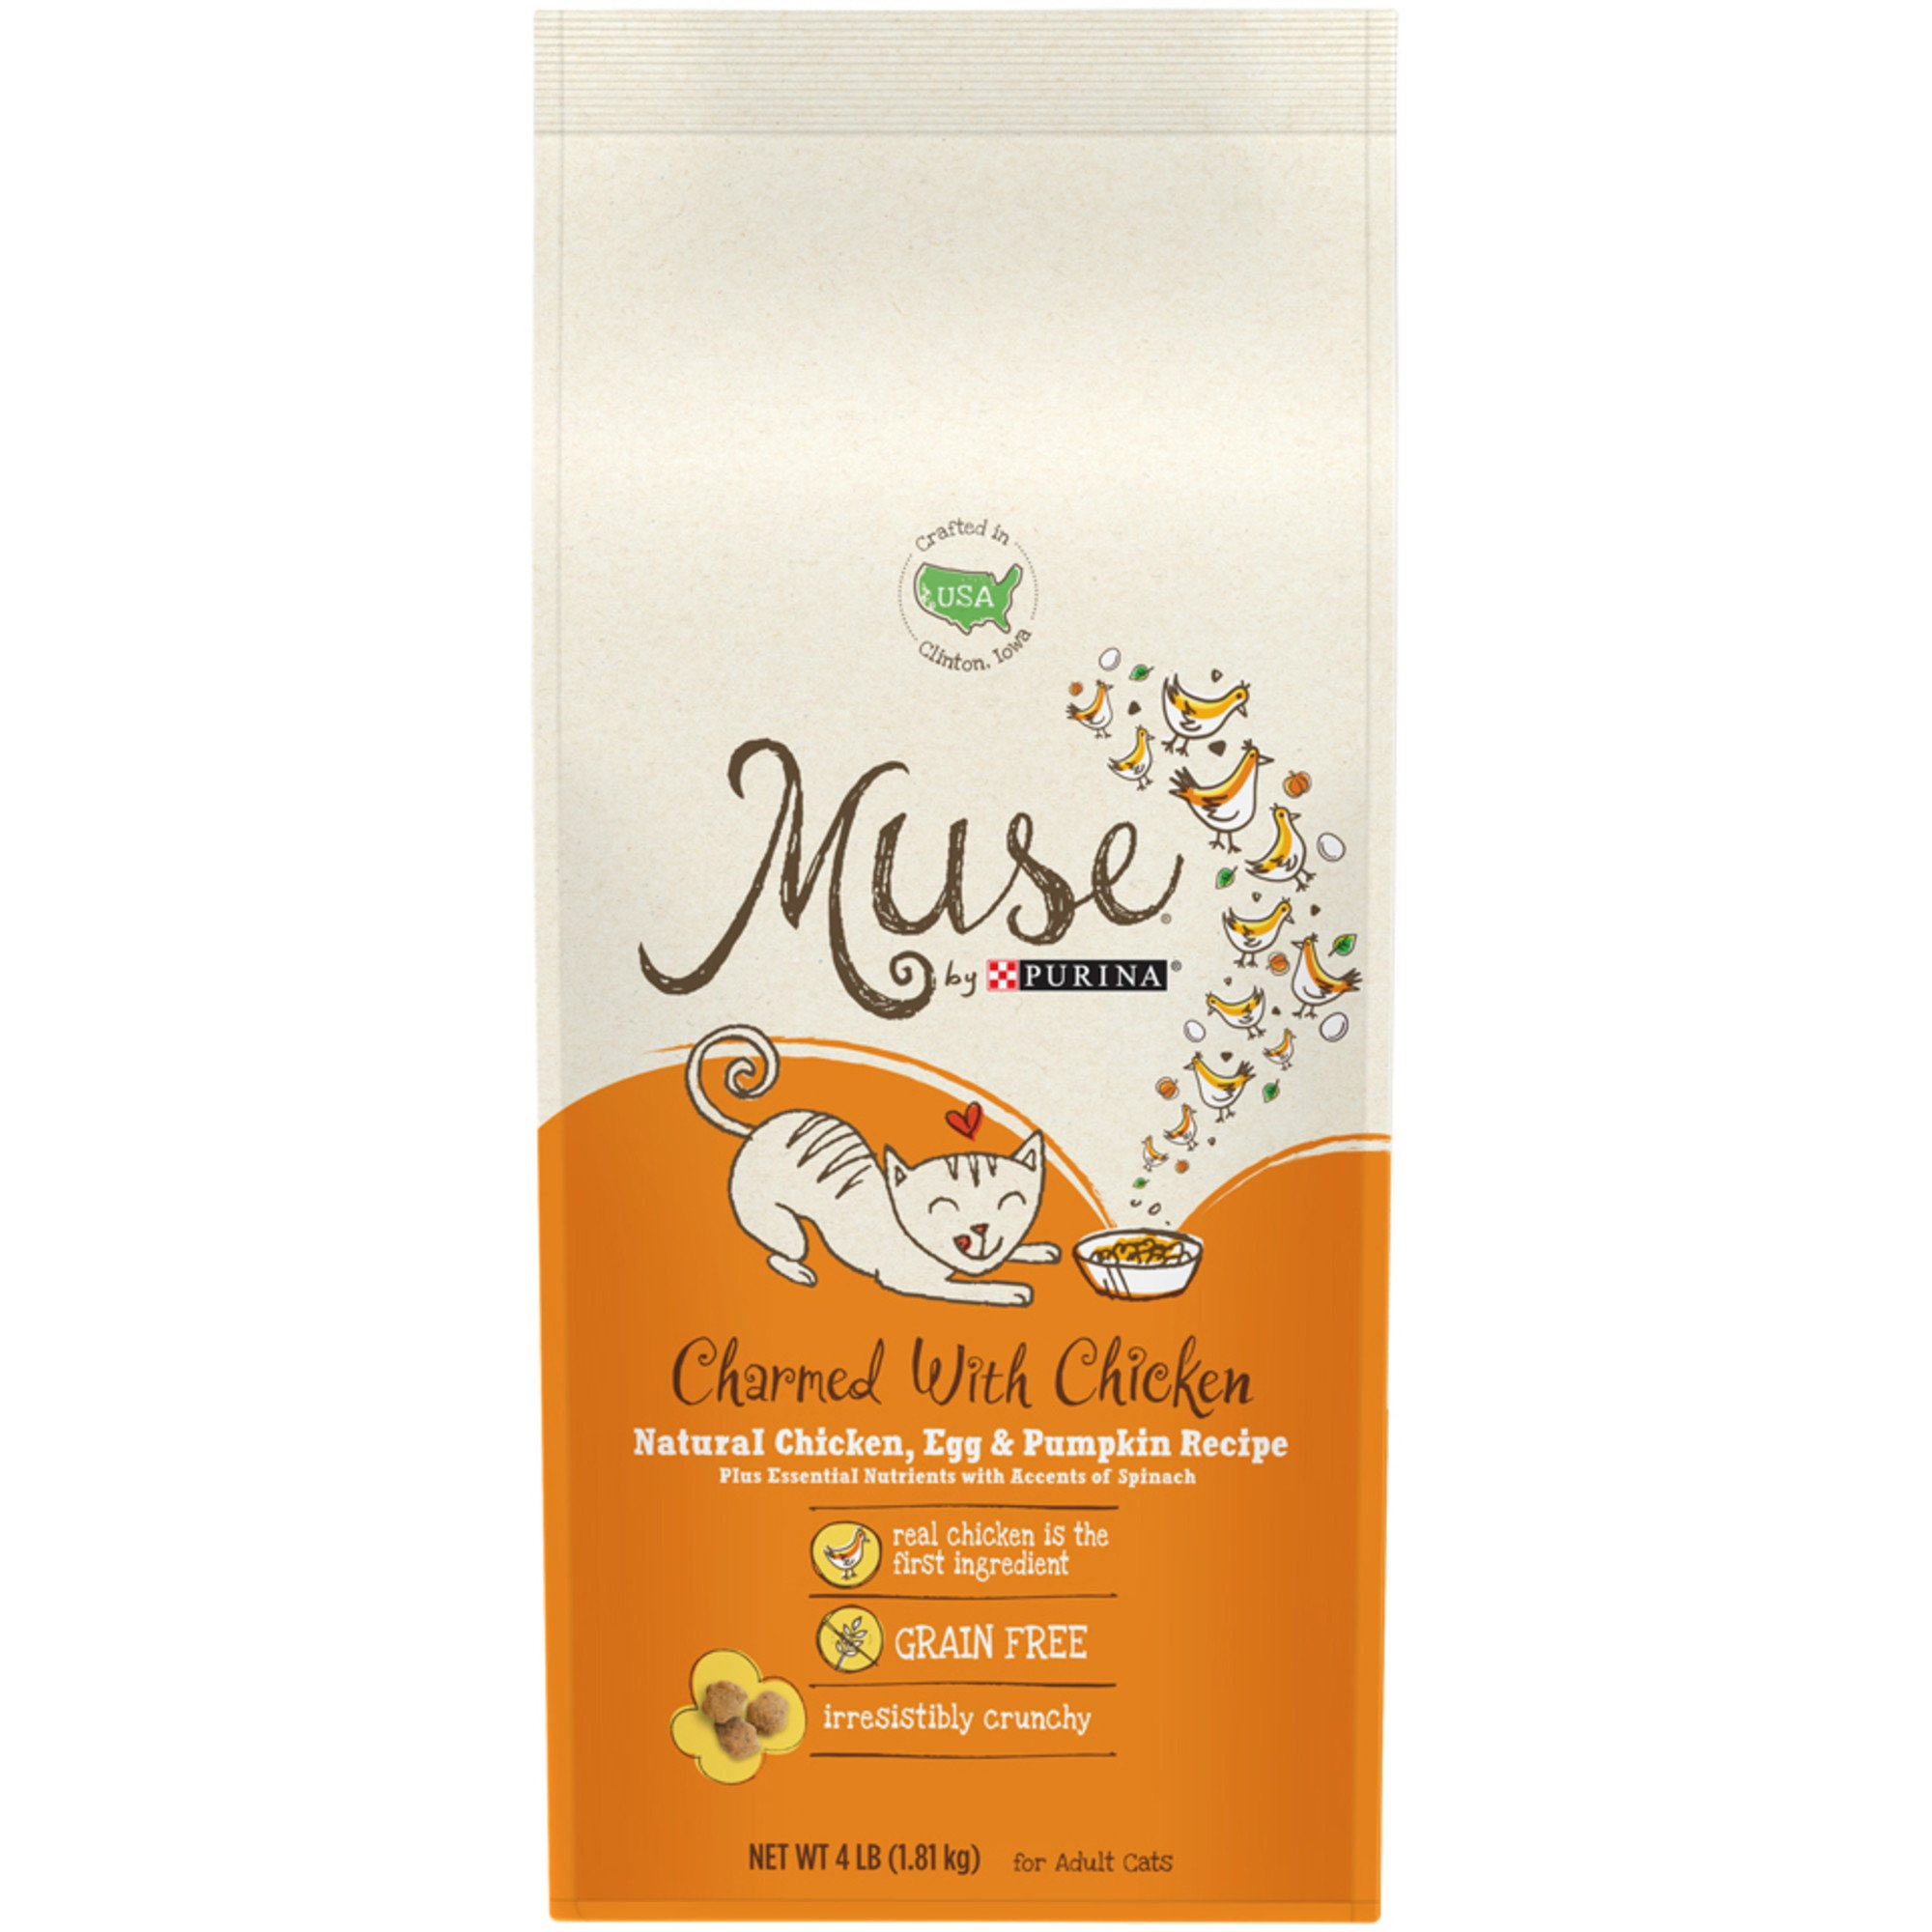 Muse by Purina Charmed With Chicken Natural Chicken, Egg & Pumpkin Recipe Cat Food